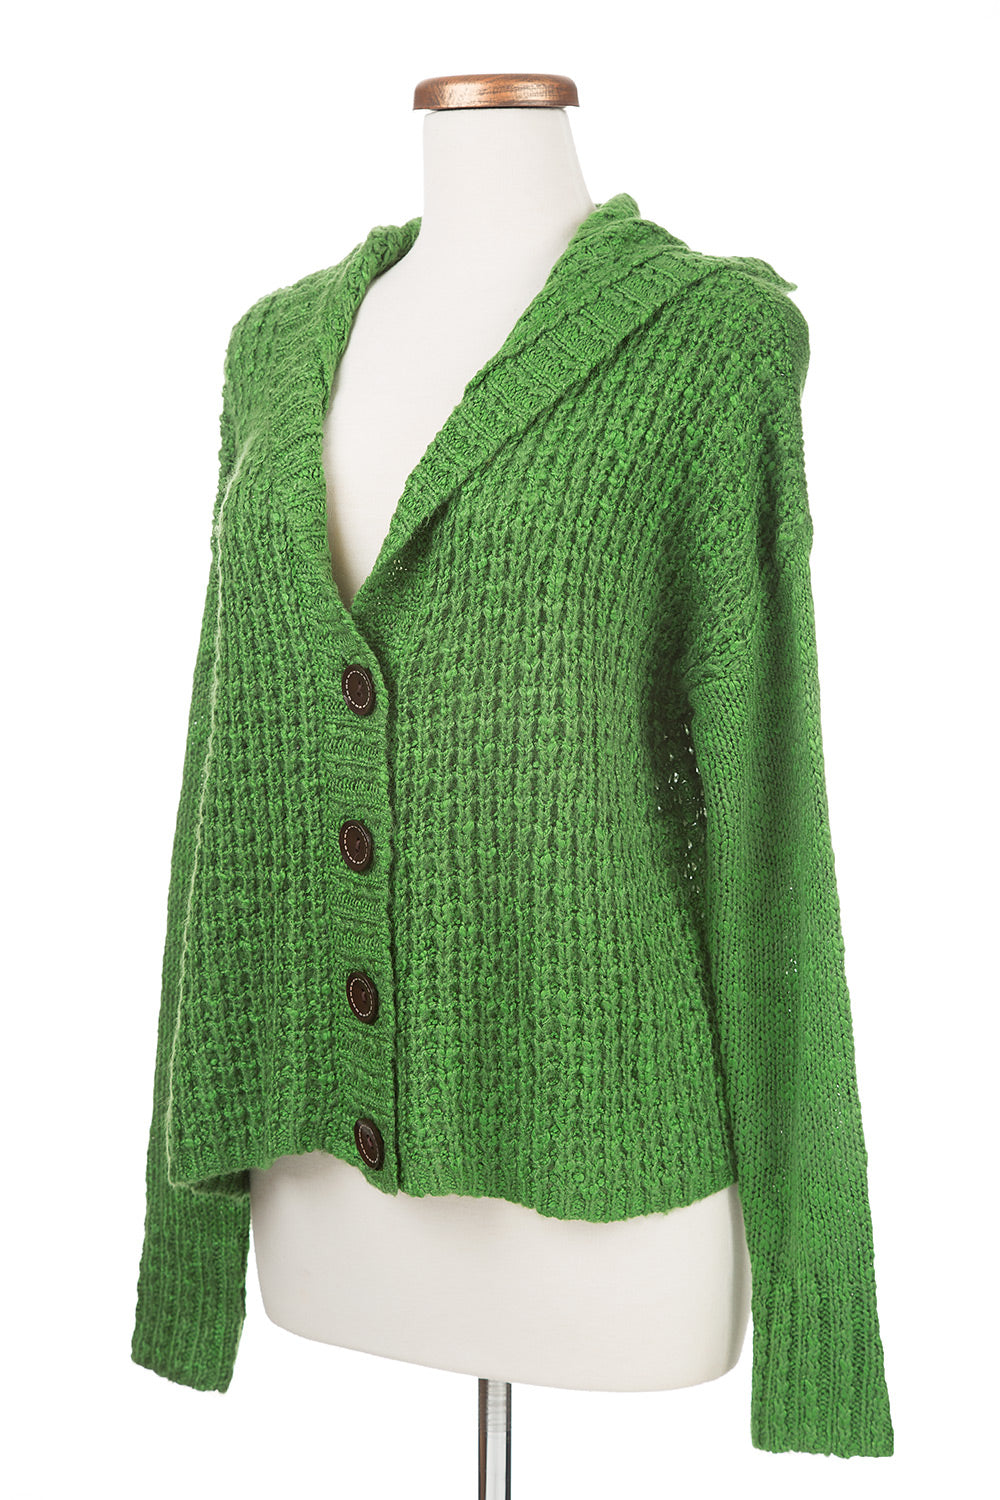 Type 3 Exotic Emerald Sweater